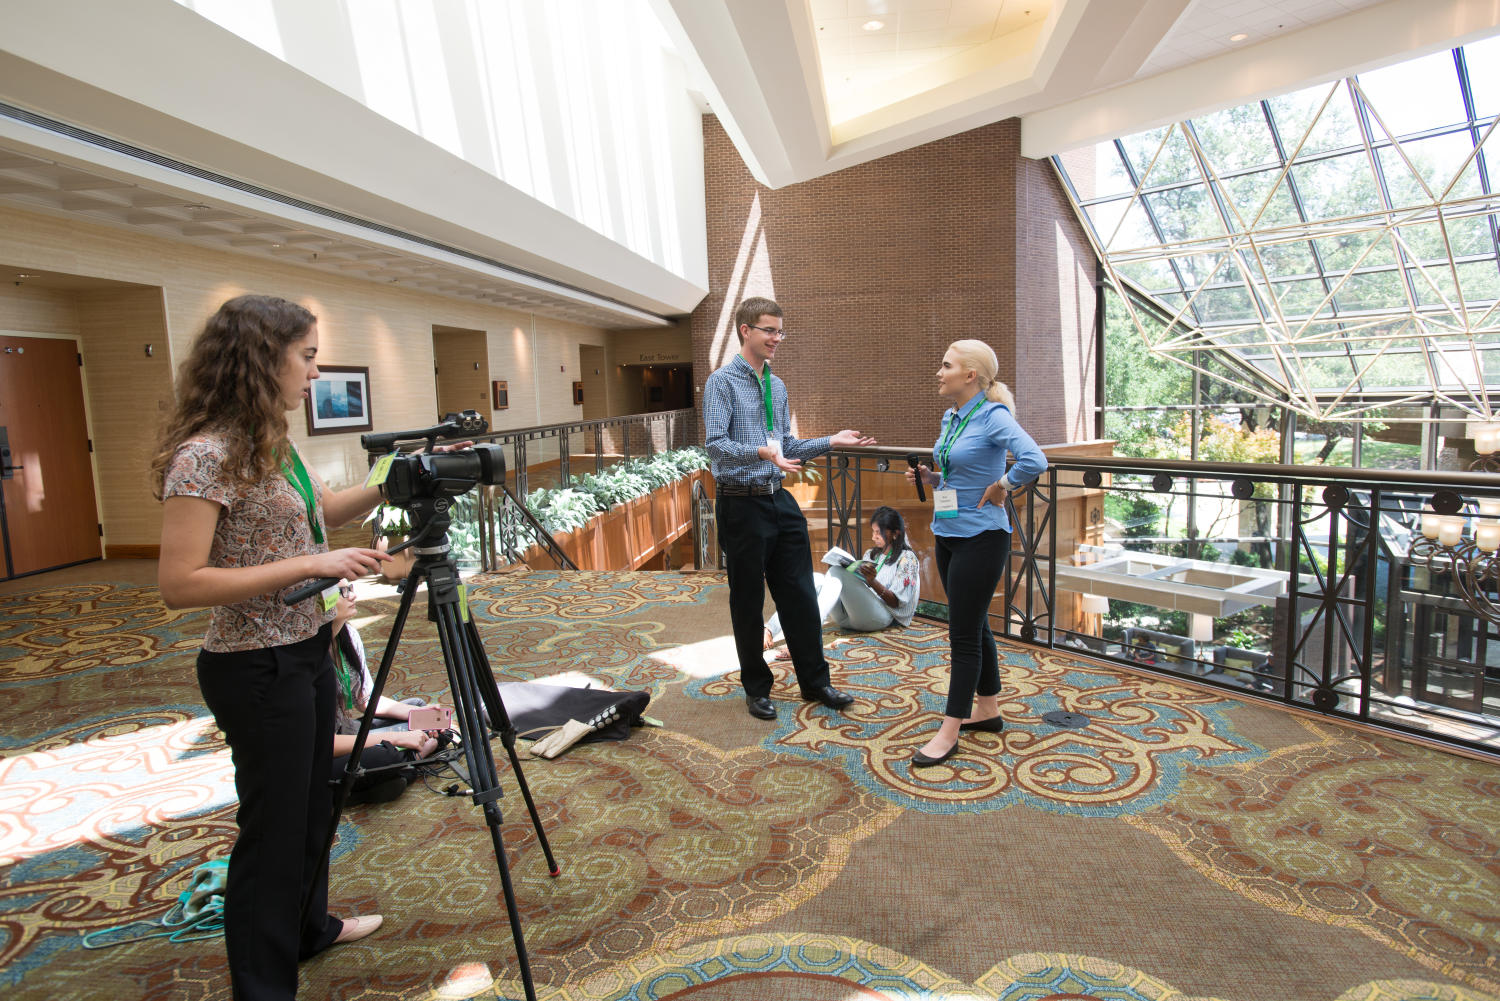 [Workshop participants recording videos], Photograph of the Multimedia High School Workshop participants utilizing new skills in the open areas of the Hilton DFW Lakes Executive Conference Center. Juliette Strope is using the camera on a tripod while Dylan Benson and Molly Chambers are recorded by the camera. Chamers is holding a microphone. Tanya Raghu and another student are sitting on the ground. The workshop took place during the Mayborn Literary Nonfiction Conference in Grapevine, TX.,